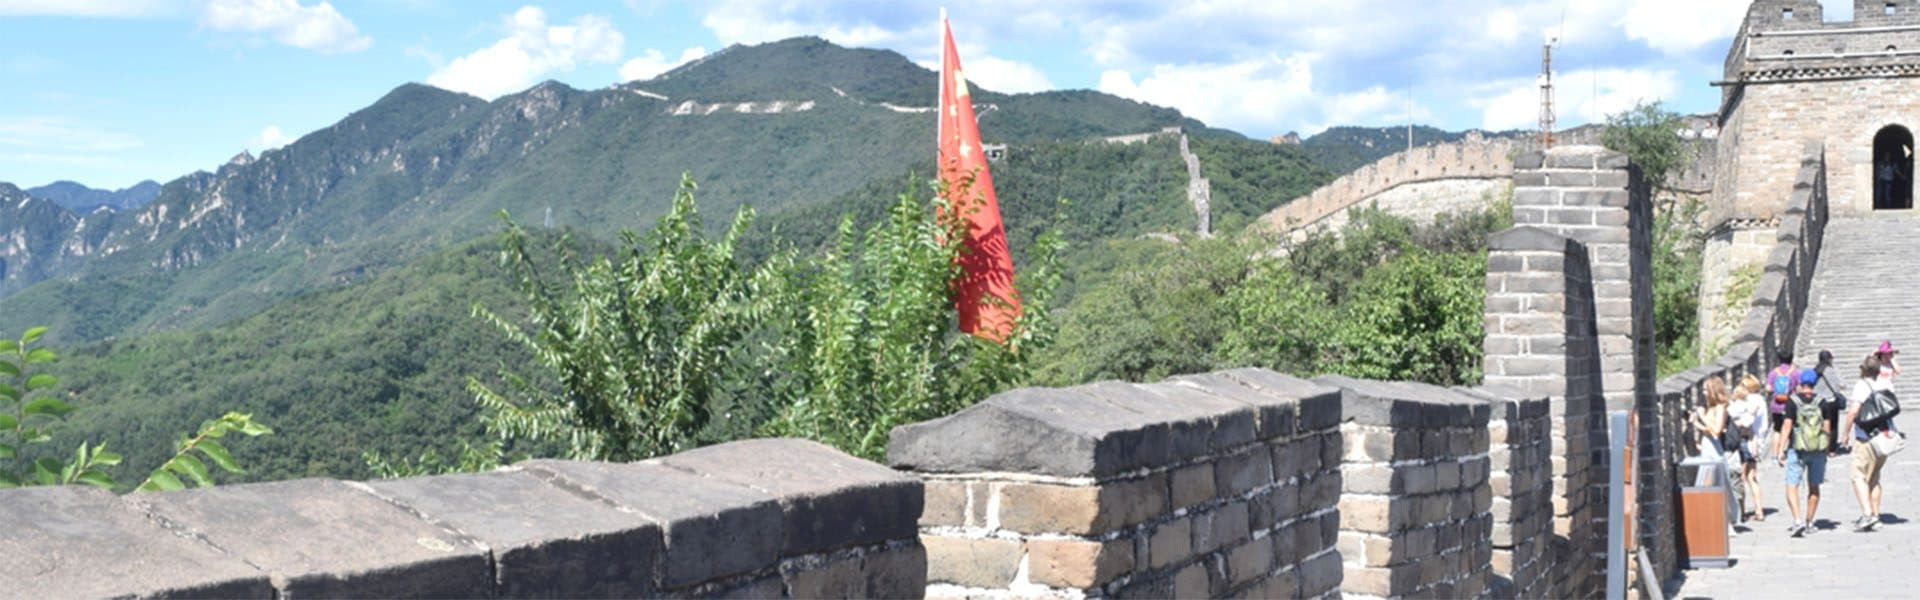 The Great Wall of China spanning across the hills into the distance